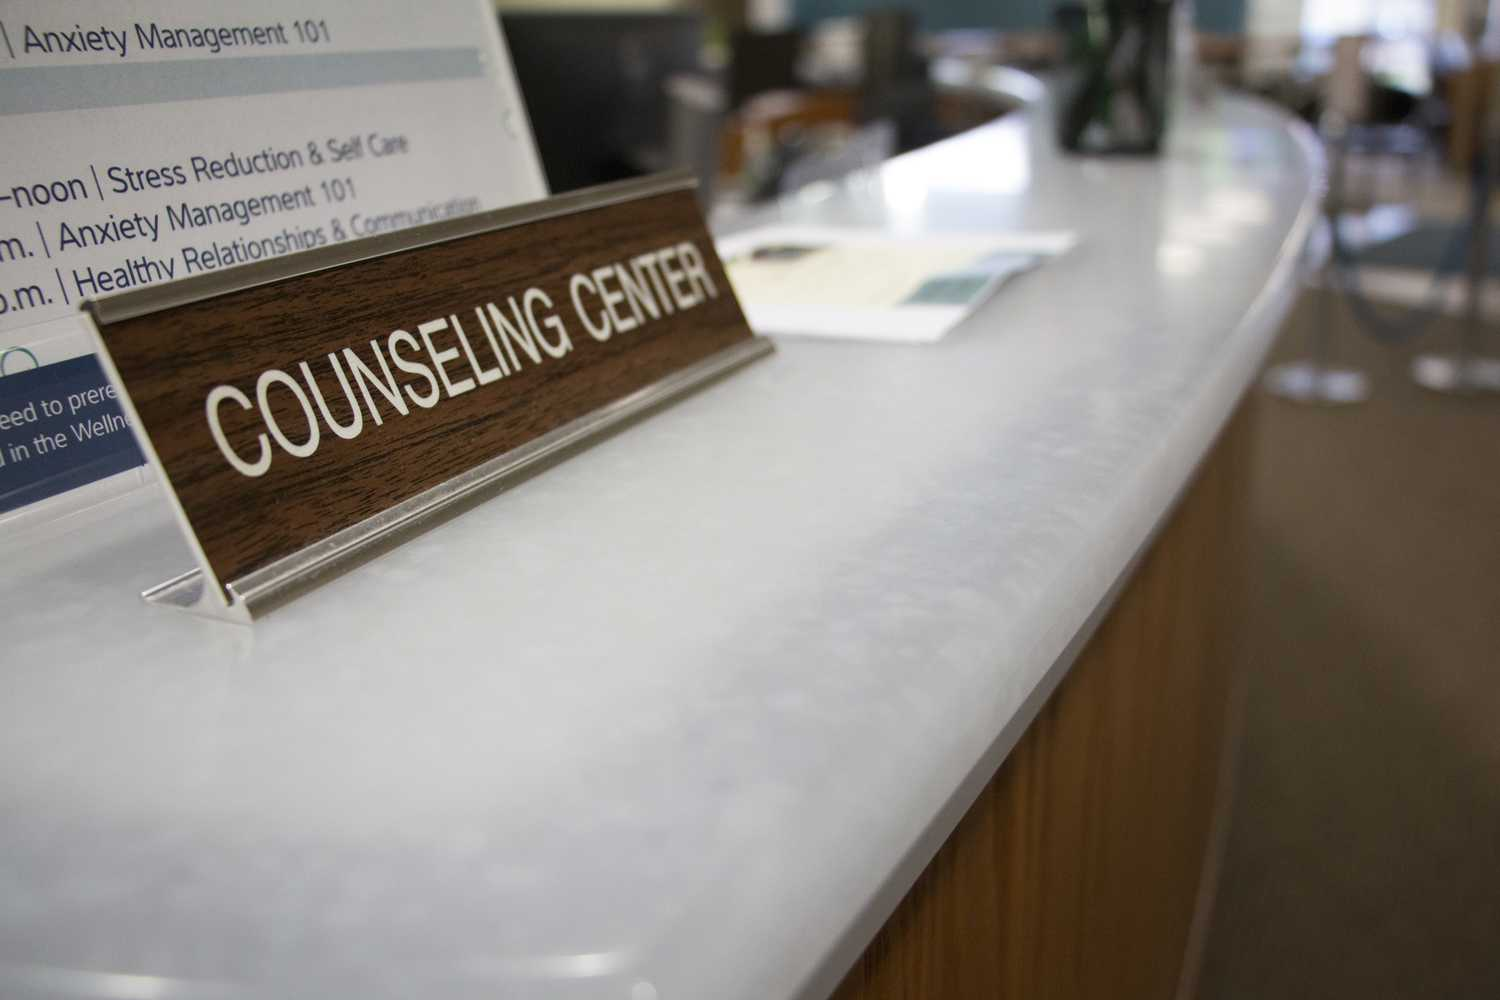 The University Counseling Center has been without a director since May 2017. (Photo by Issi Glatts | Staff Photographer)